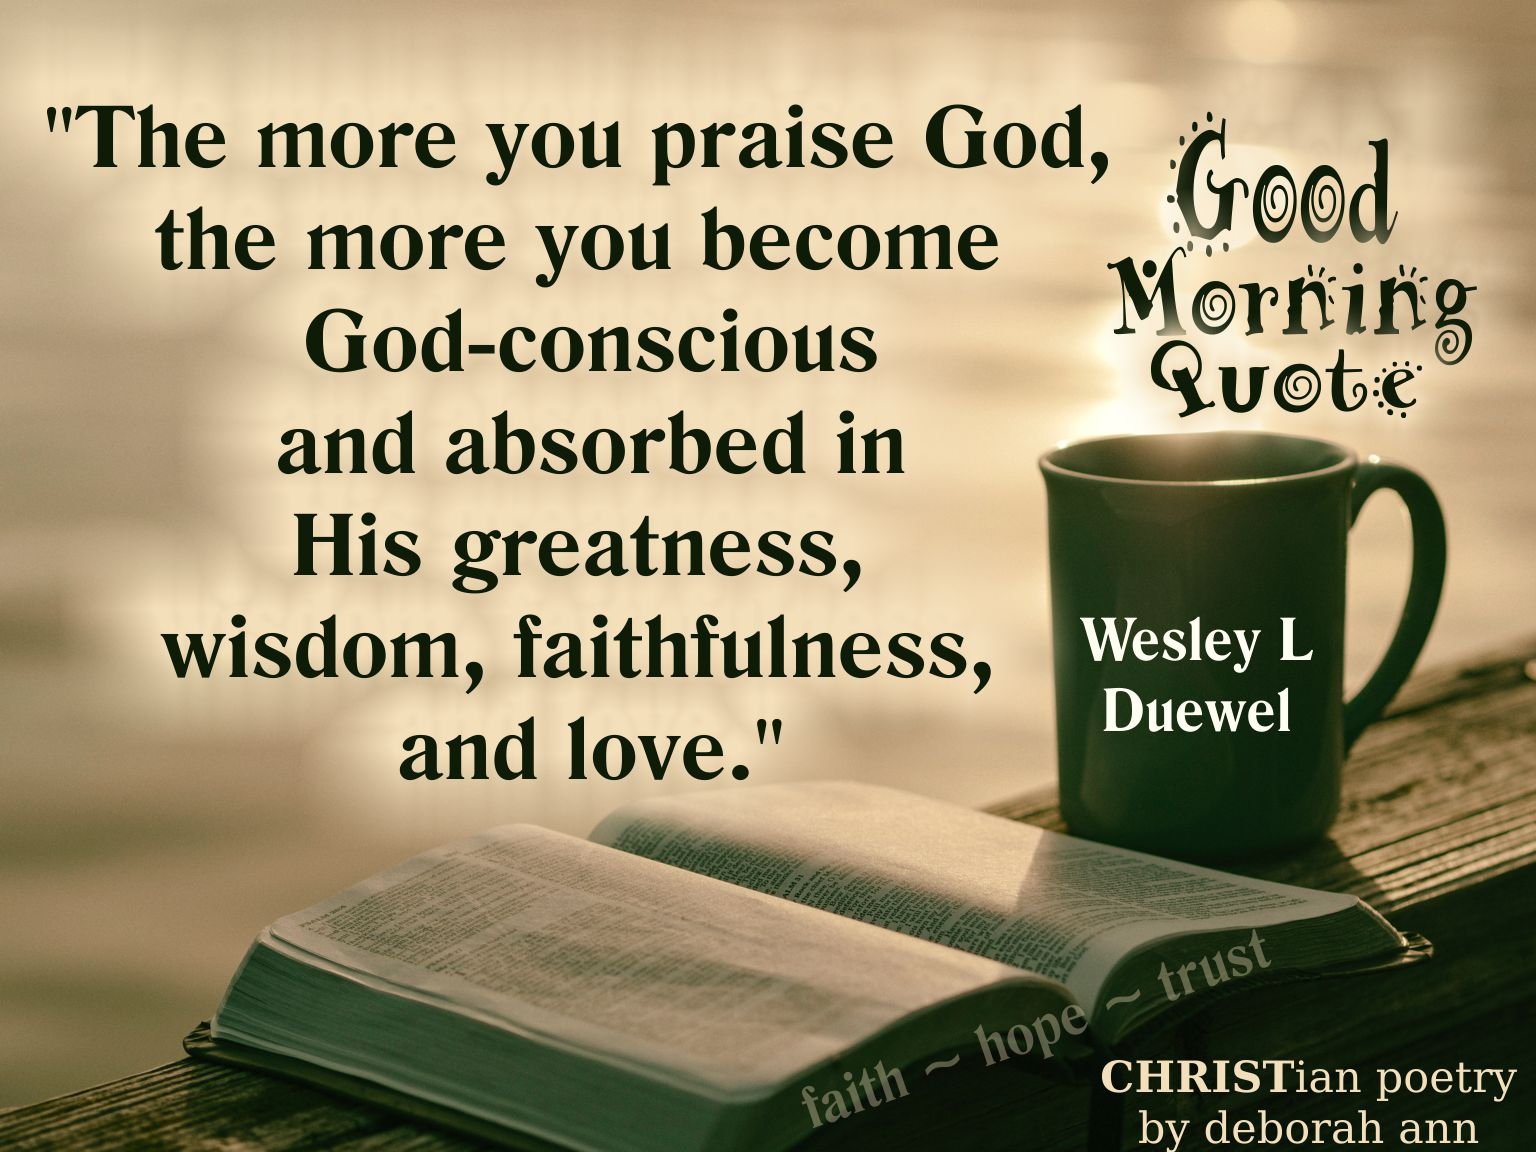 Good Morning Quote 080318 Christian Poetry By Deborah Ann